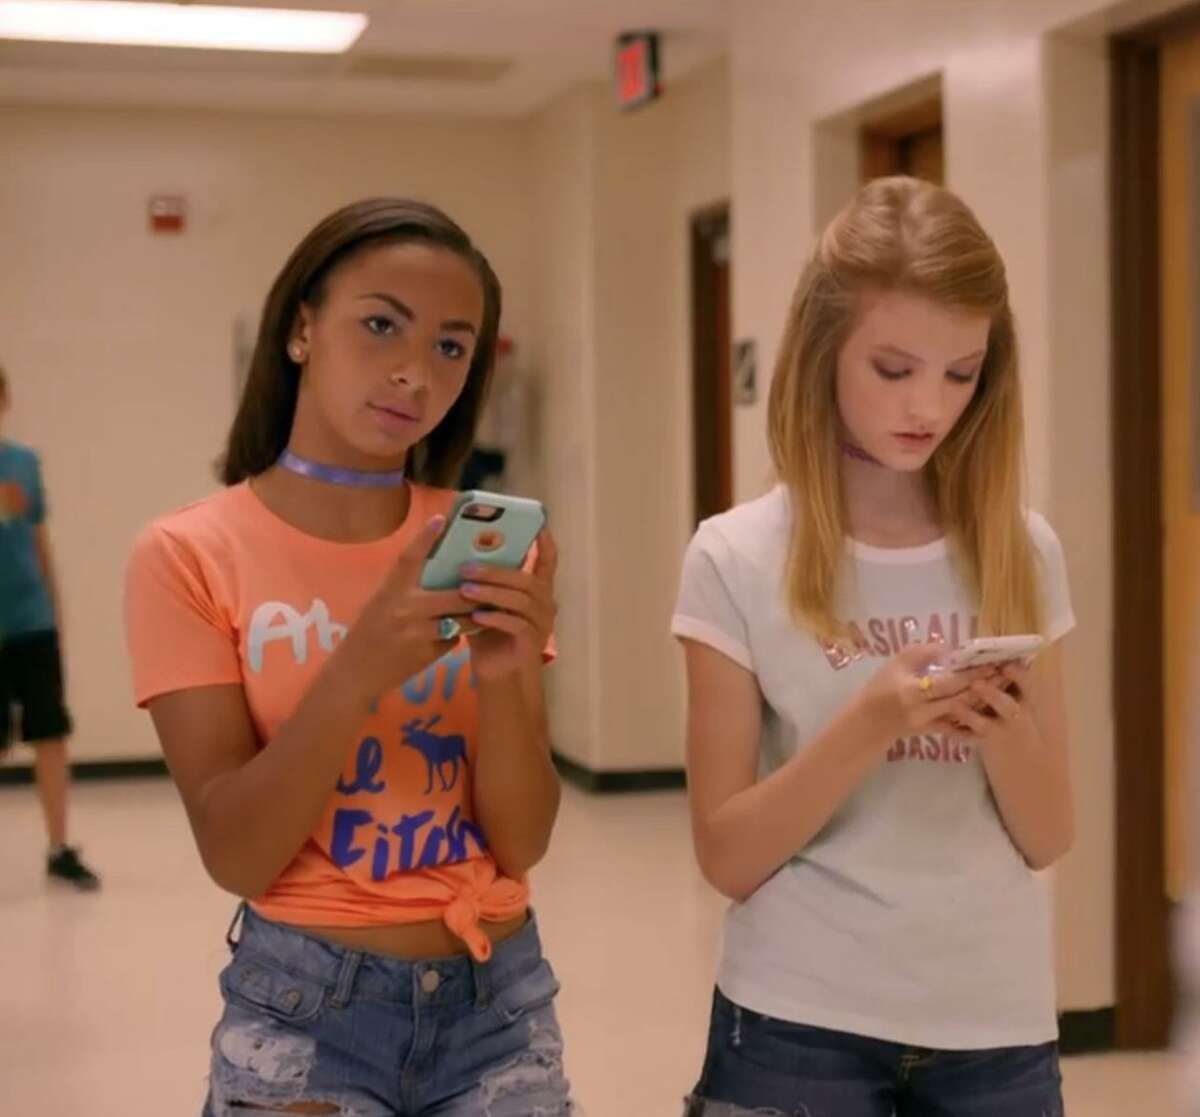 Screen shot from the movie 'Eighth Grade' publicity trailer of Nora Mullins and unidentified co-star.